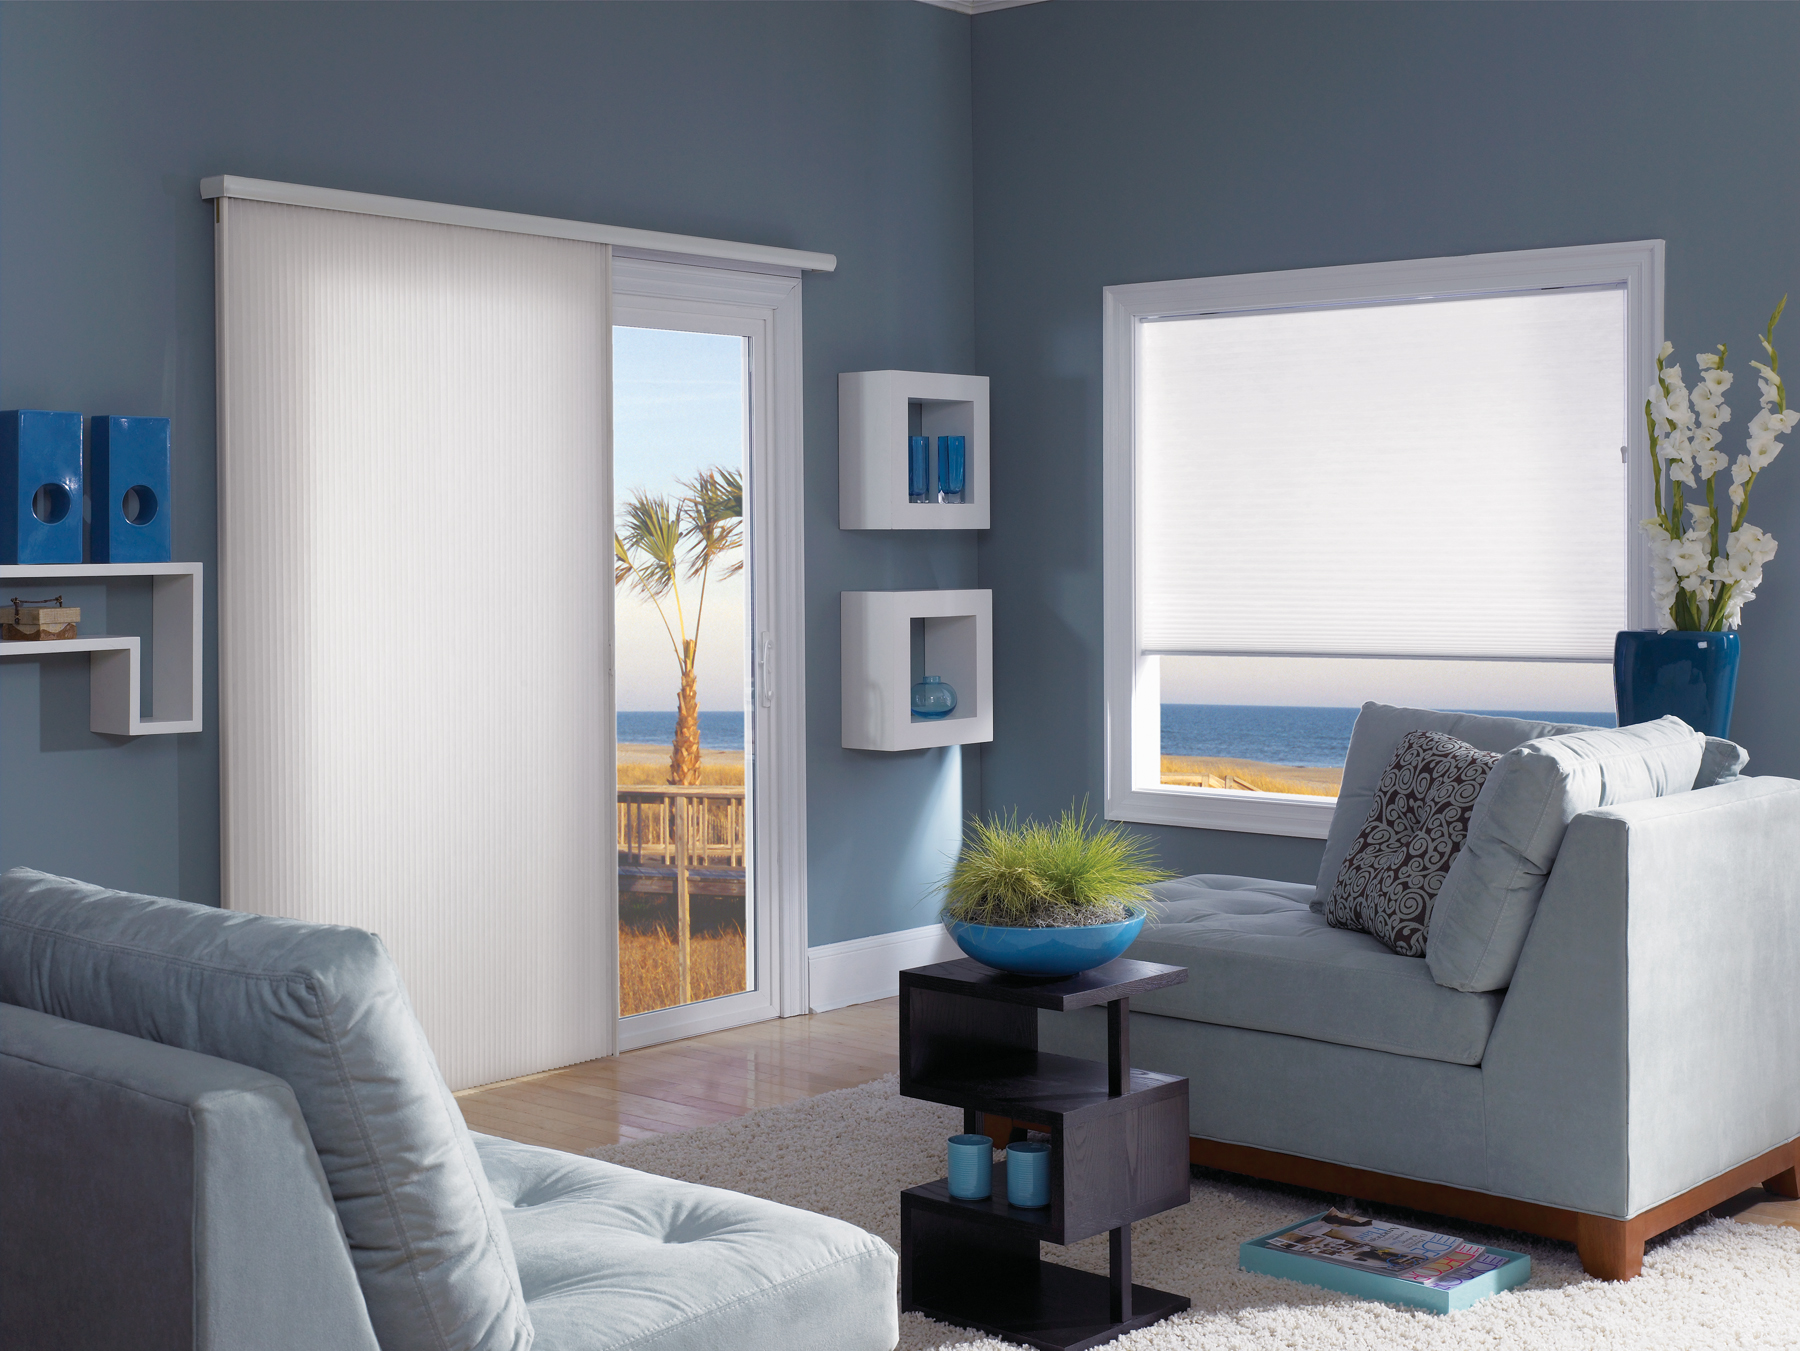 Design Ideas for Patio Doors - Villa Blind and Shutter